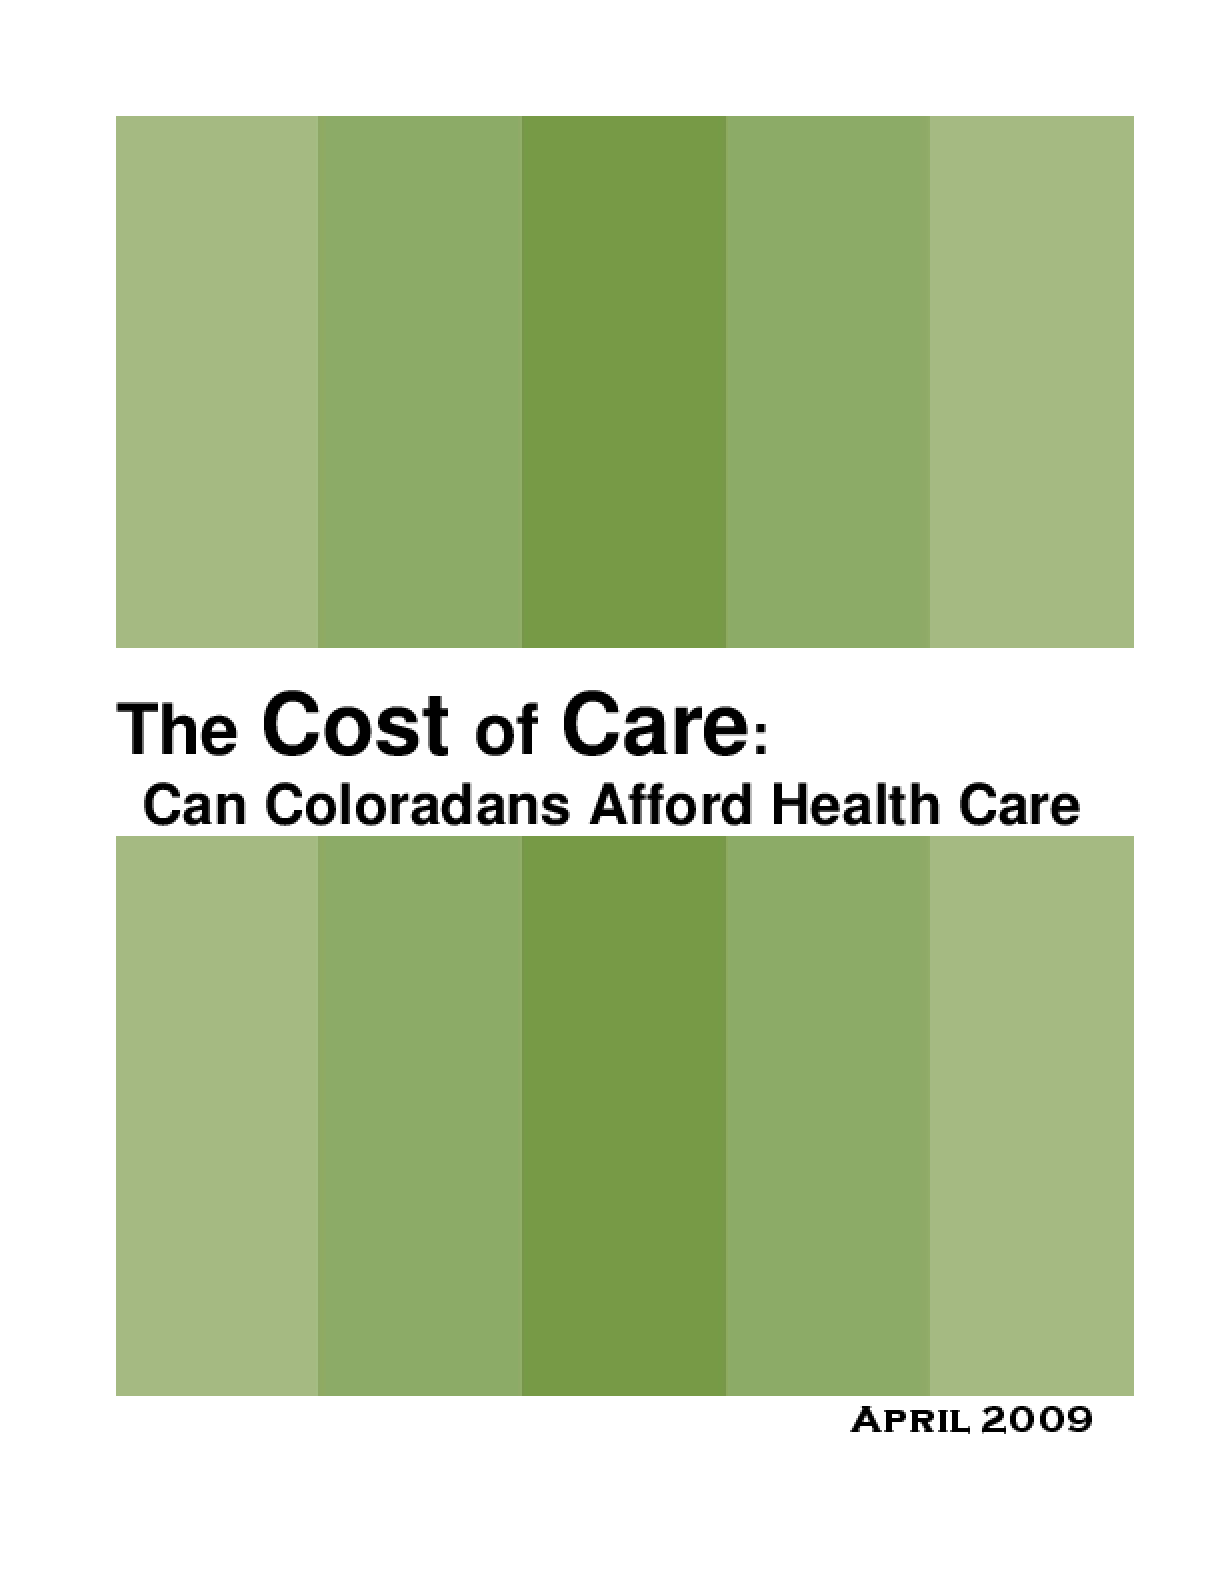 Cost of Care: Can Coloradans Afford Health Care? (Full Report)